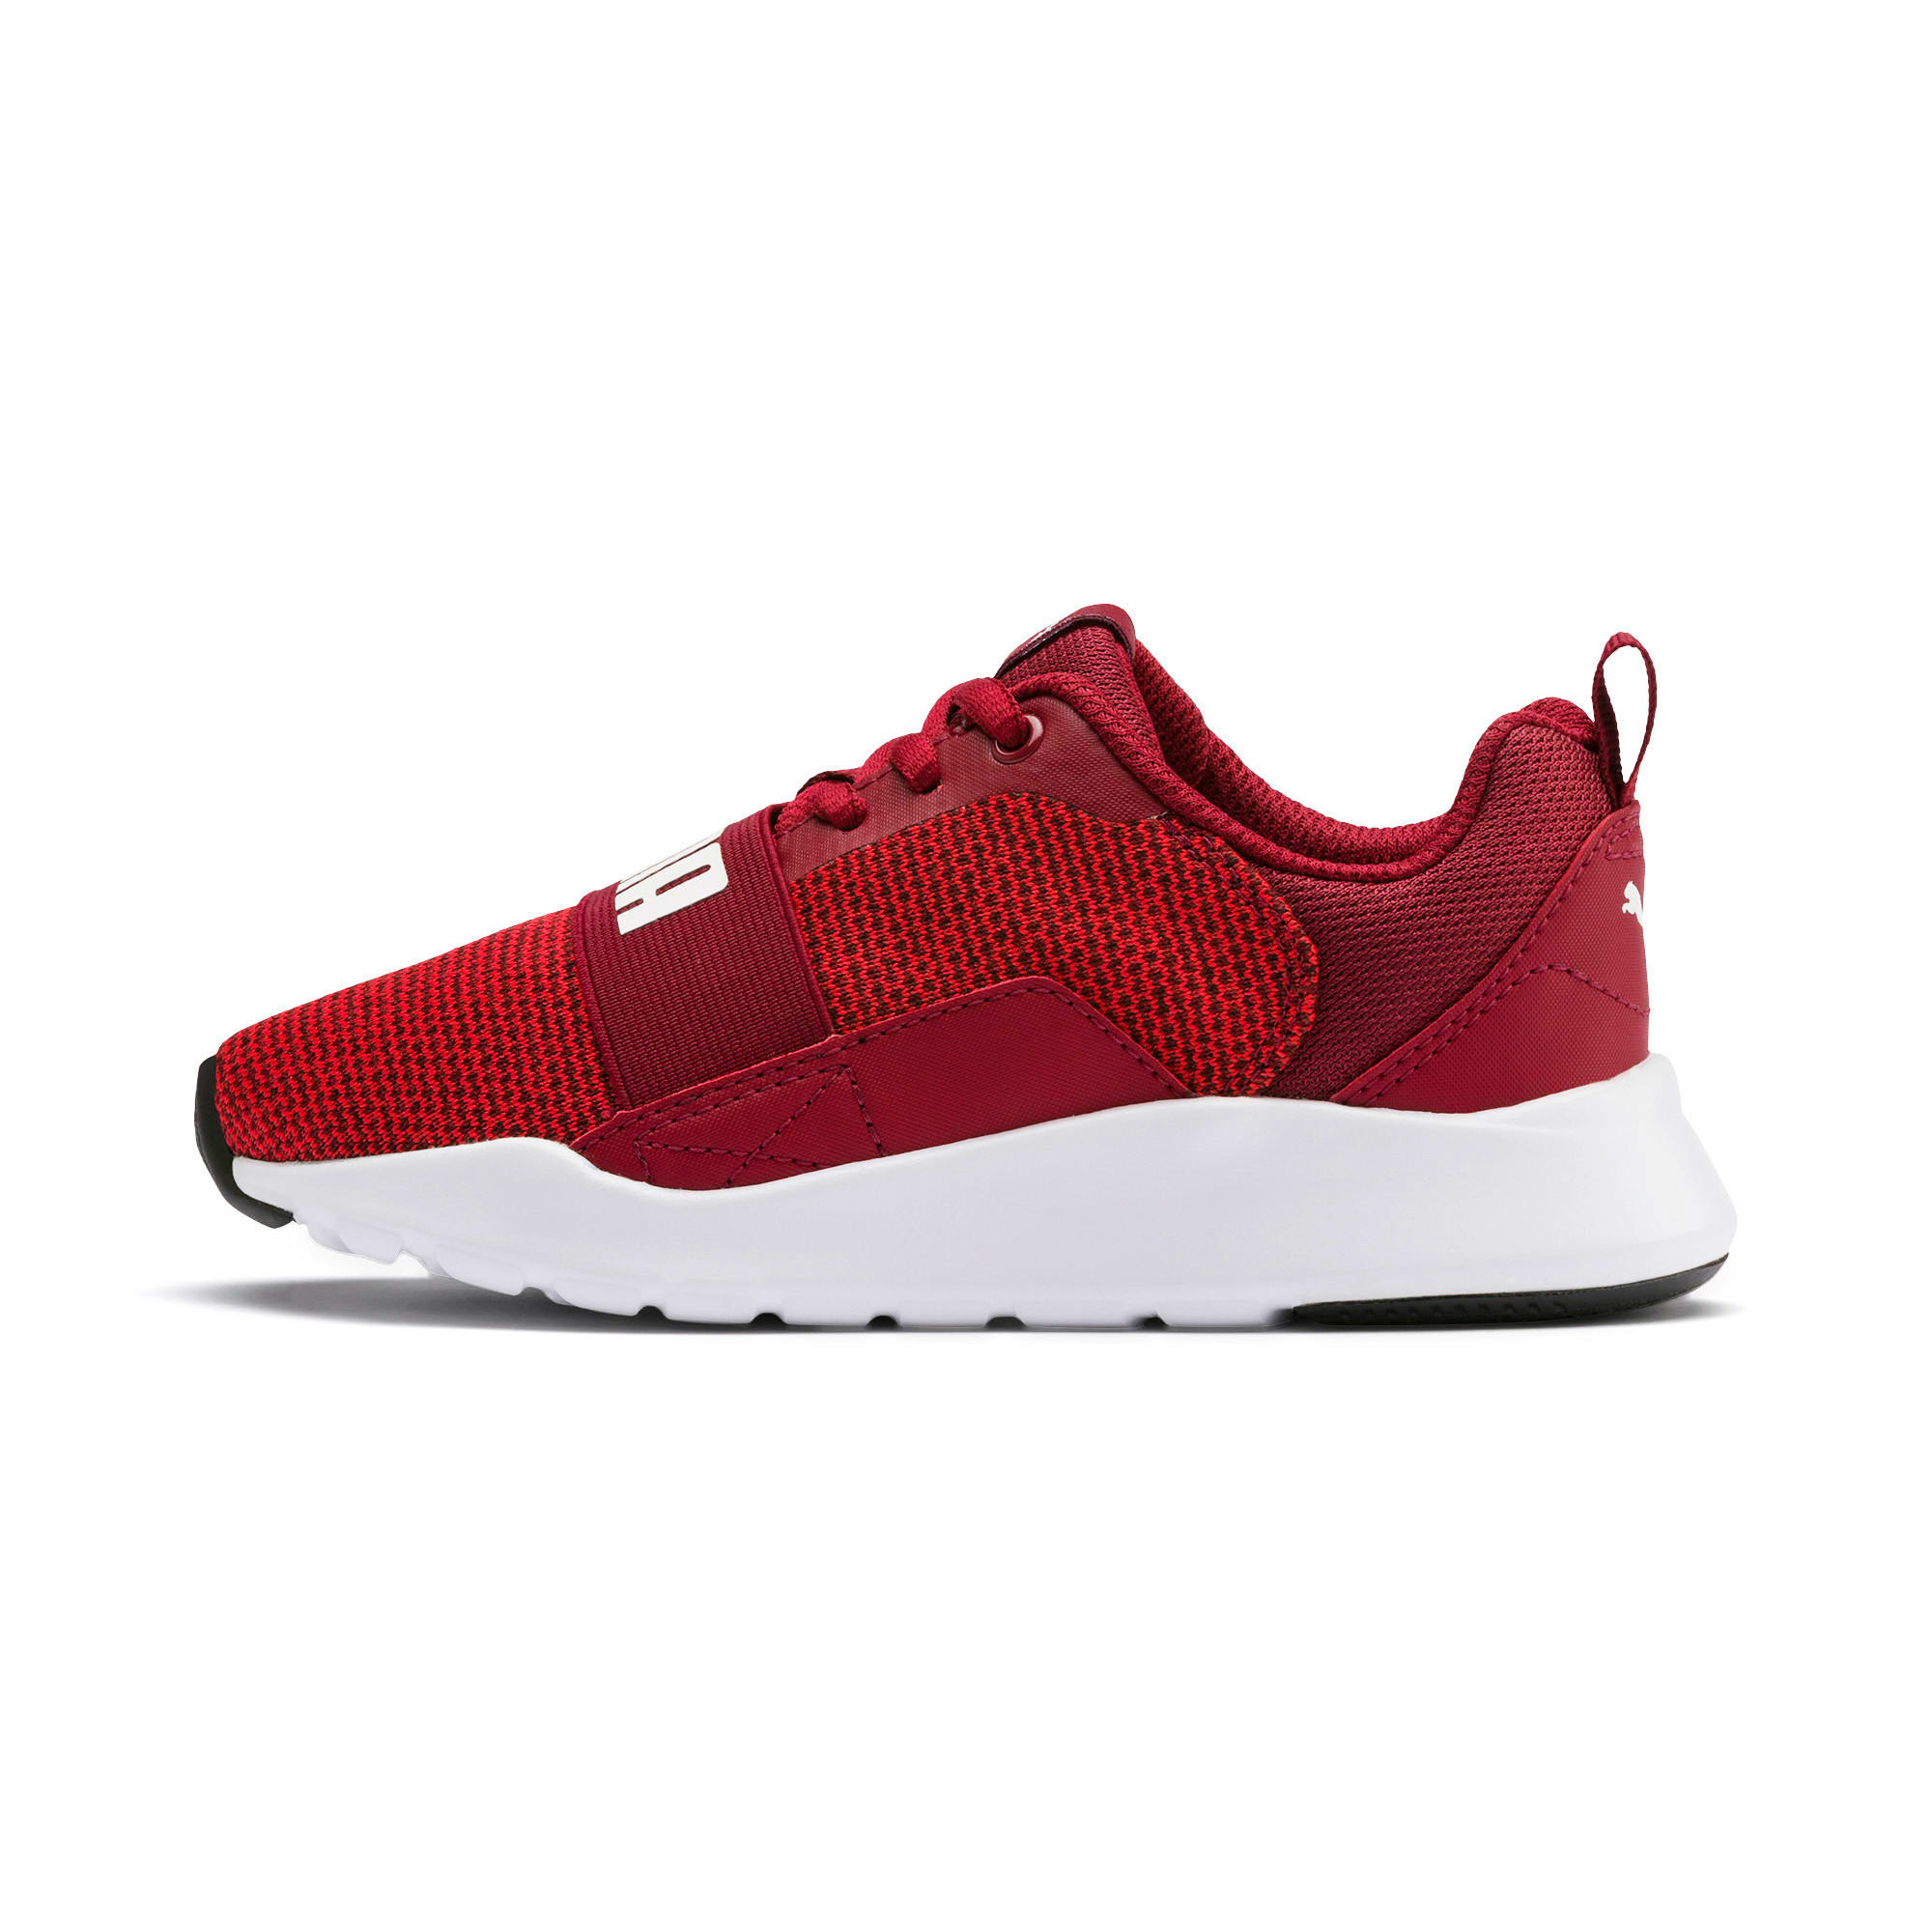 Thumbnail 1 of Wired Knit Kids' Trainers, Rhubarb-Puma White, medium-IND